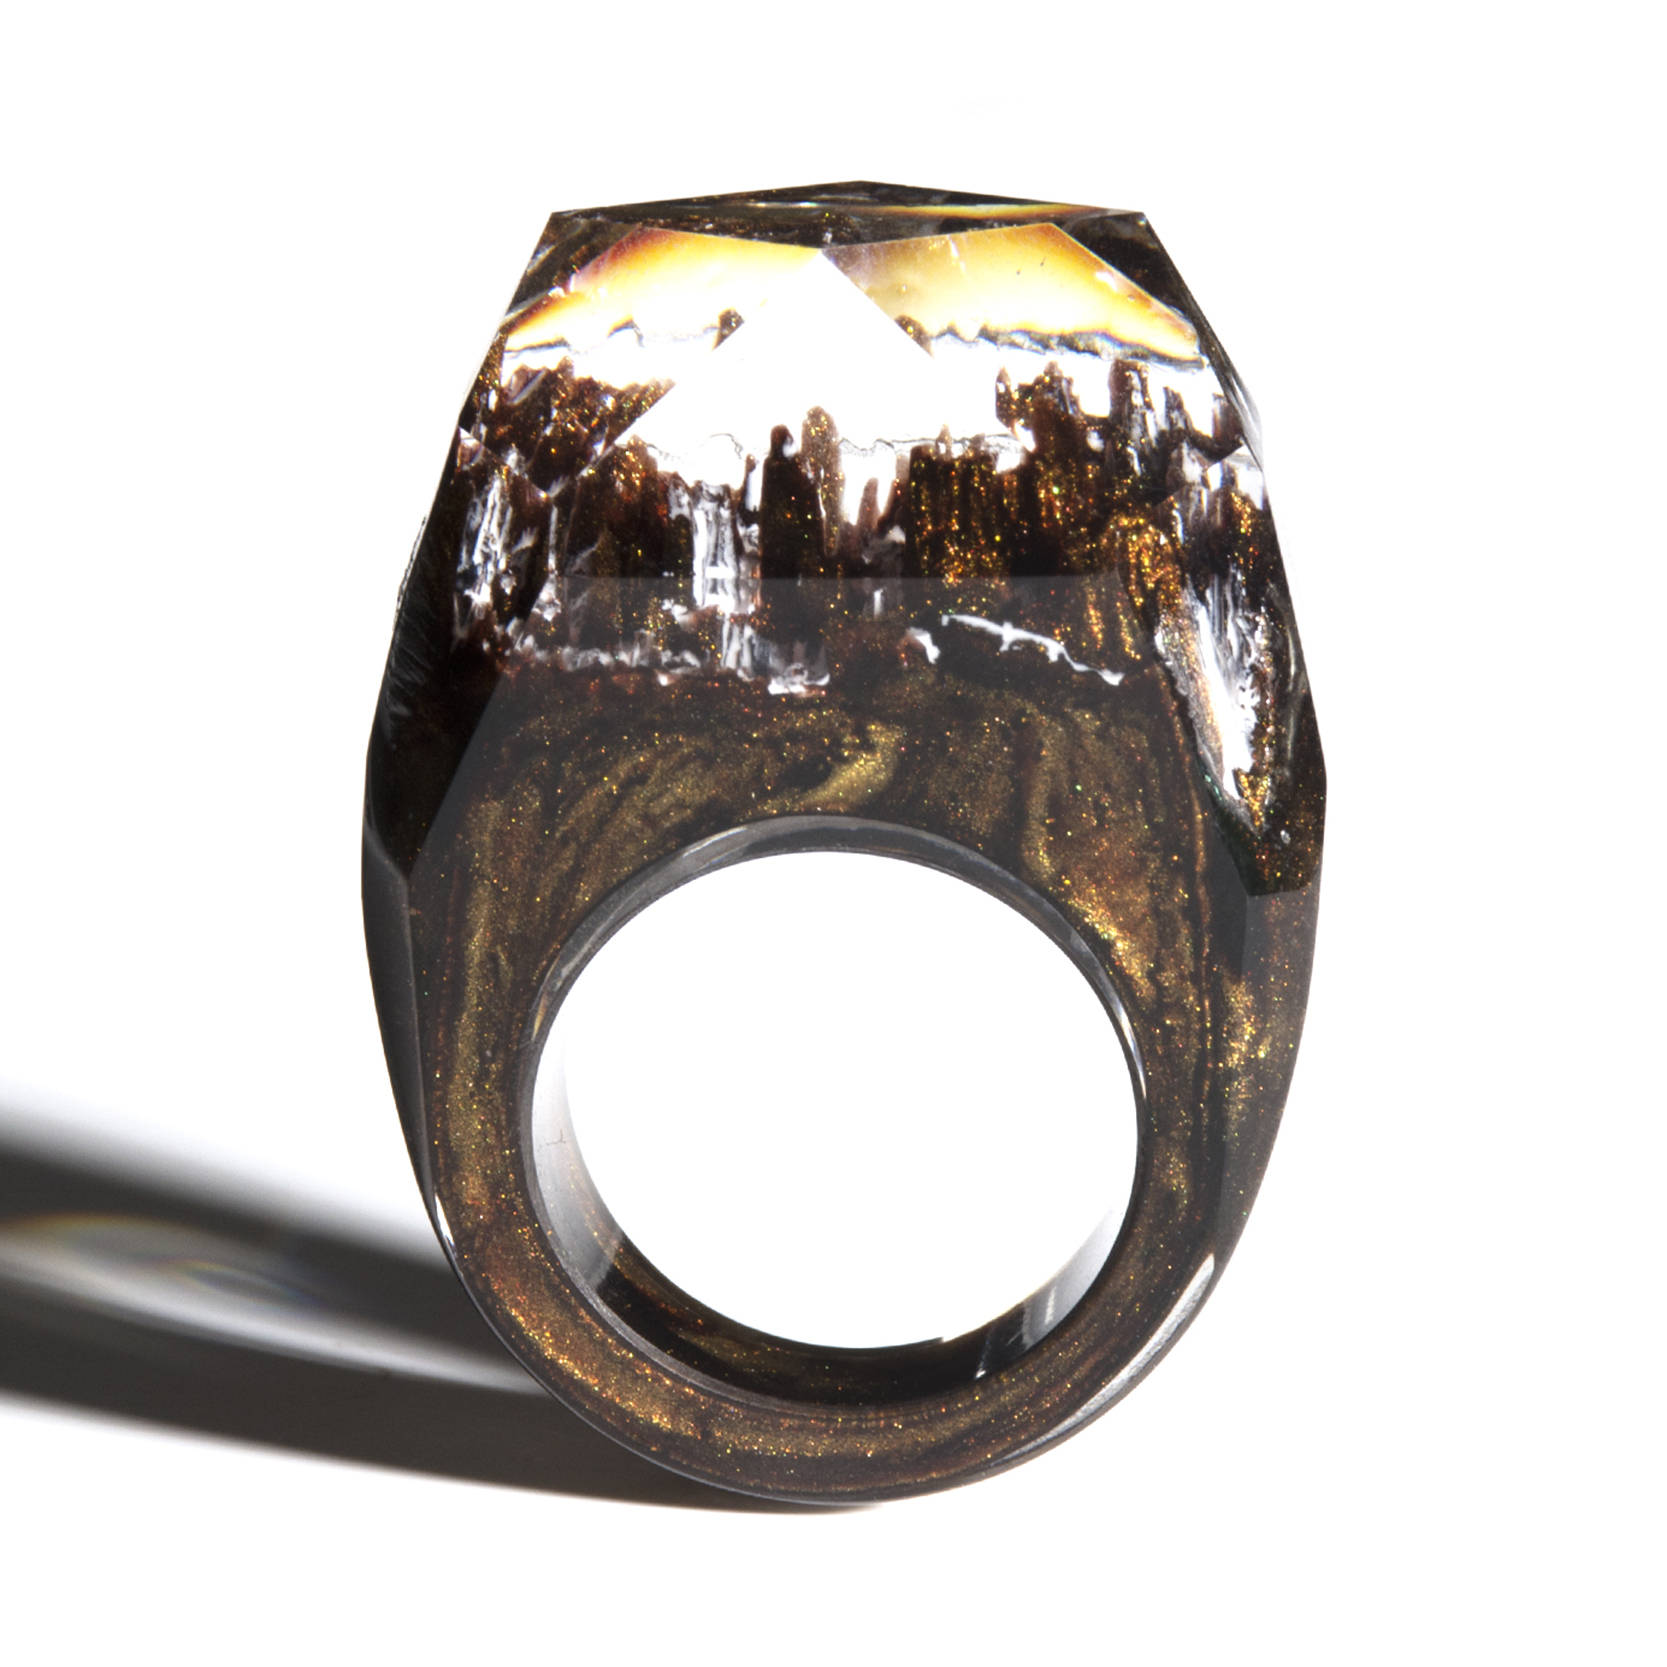 H14ab8a392ee5470089e79c143e5cc545K - Forest Ring